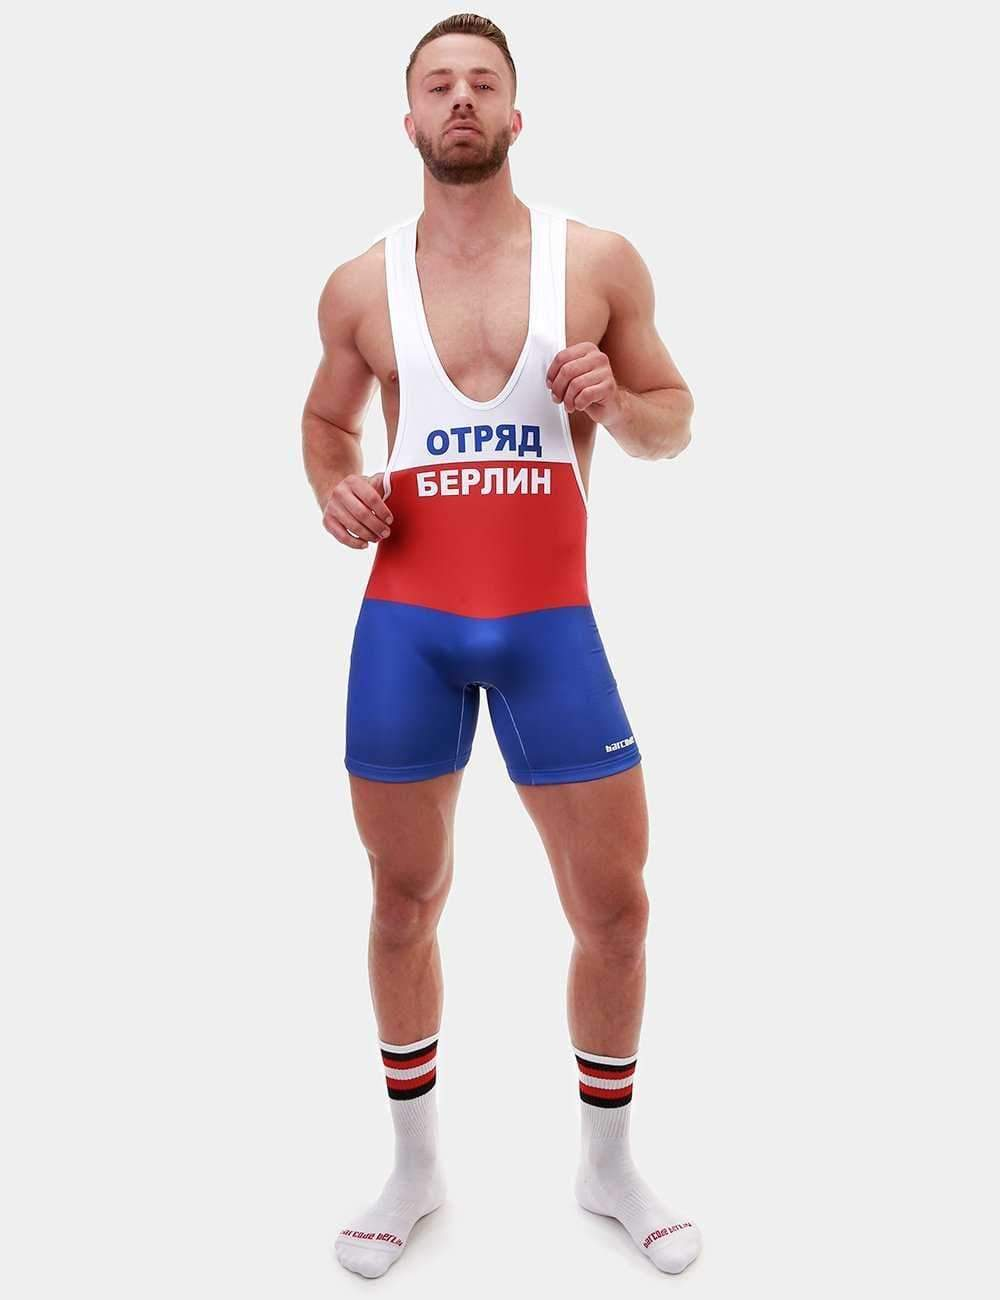 Barcode Berlin Filipp White, Red & Blue Singlet